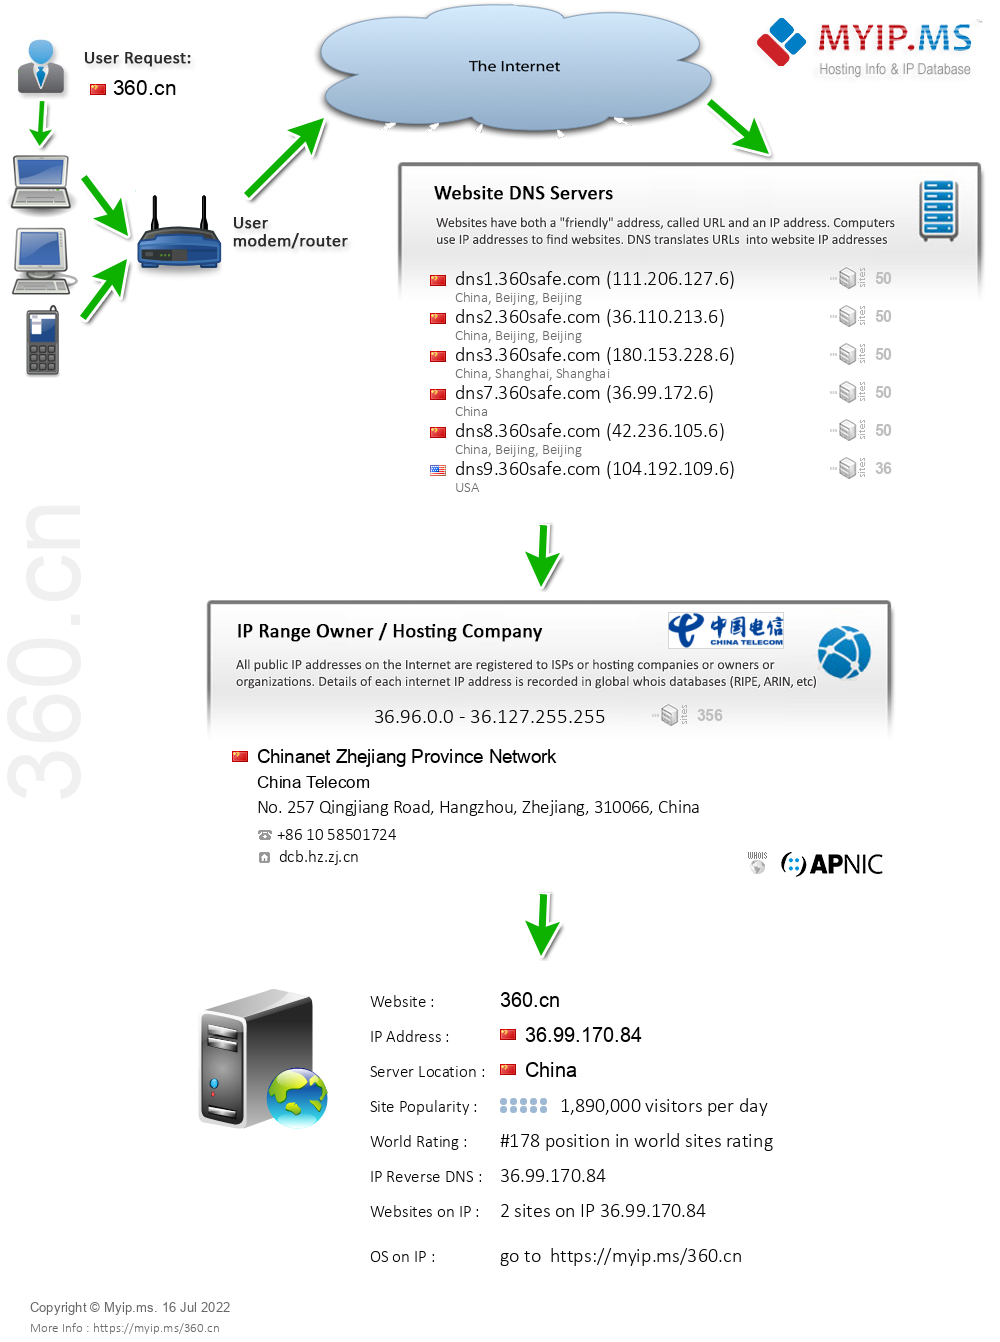 360.cn - Website Hosting Visual IP Diagram